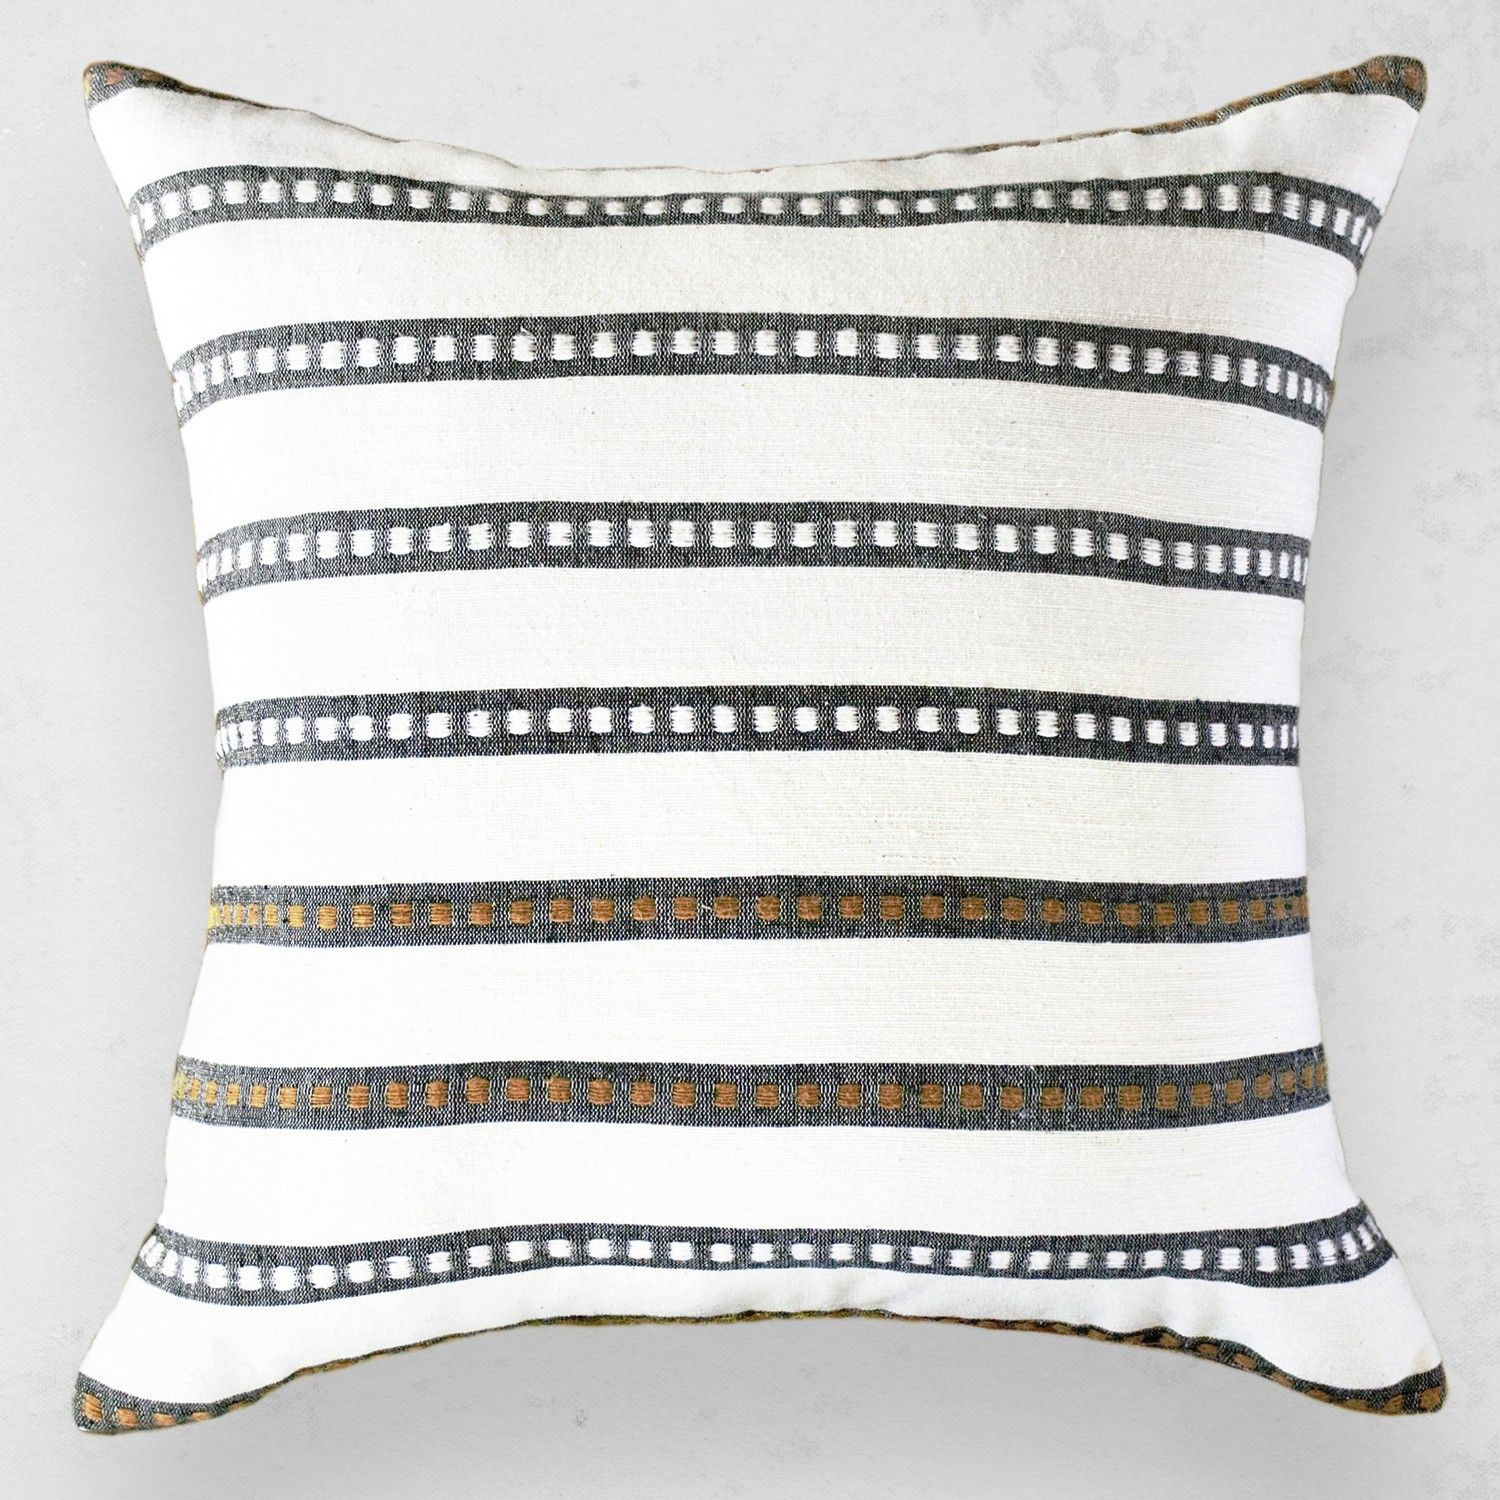 We had a bit of fun with the design of this pillow the black and